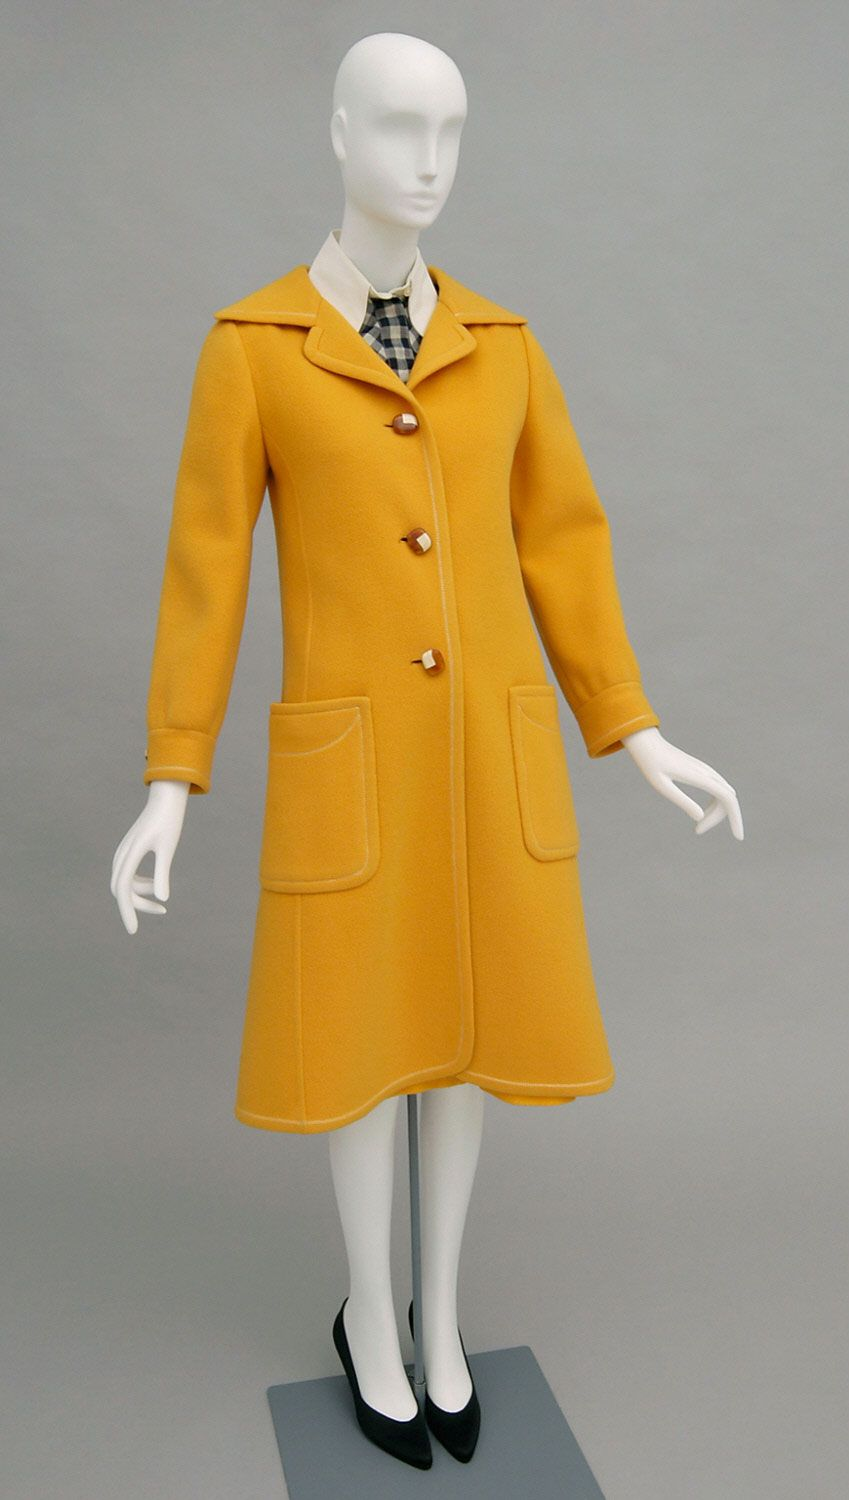 Philadelphia Museum of Art - Collections Object : Woman's Ensemble: Coat, Jacket, Skirt and Blouse 1970s